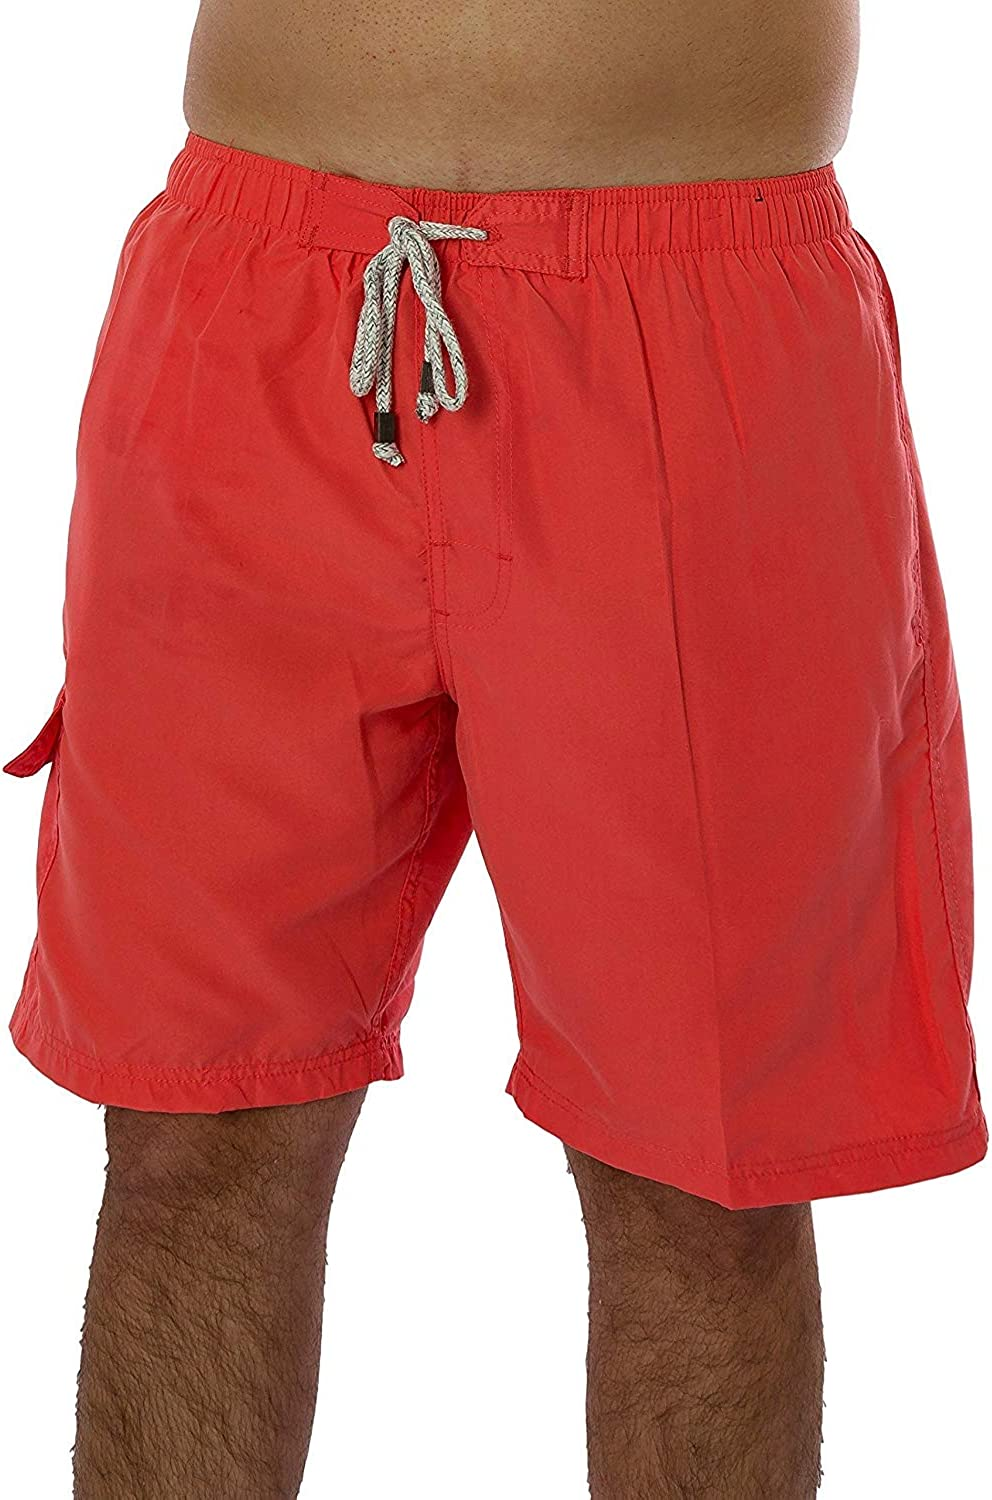 Hateone Mens Beach Shorts Quick Dry Snake Close Up Summer Holiday Mesh Lining Swimwear Board Shorts with Pockets